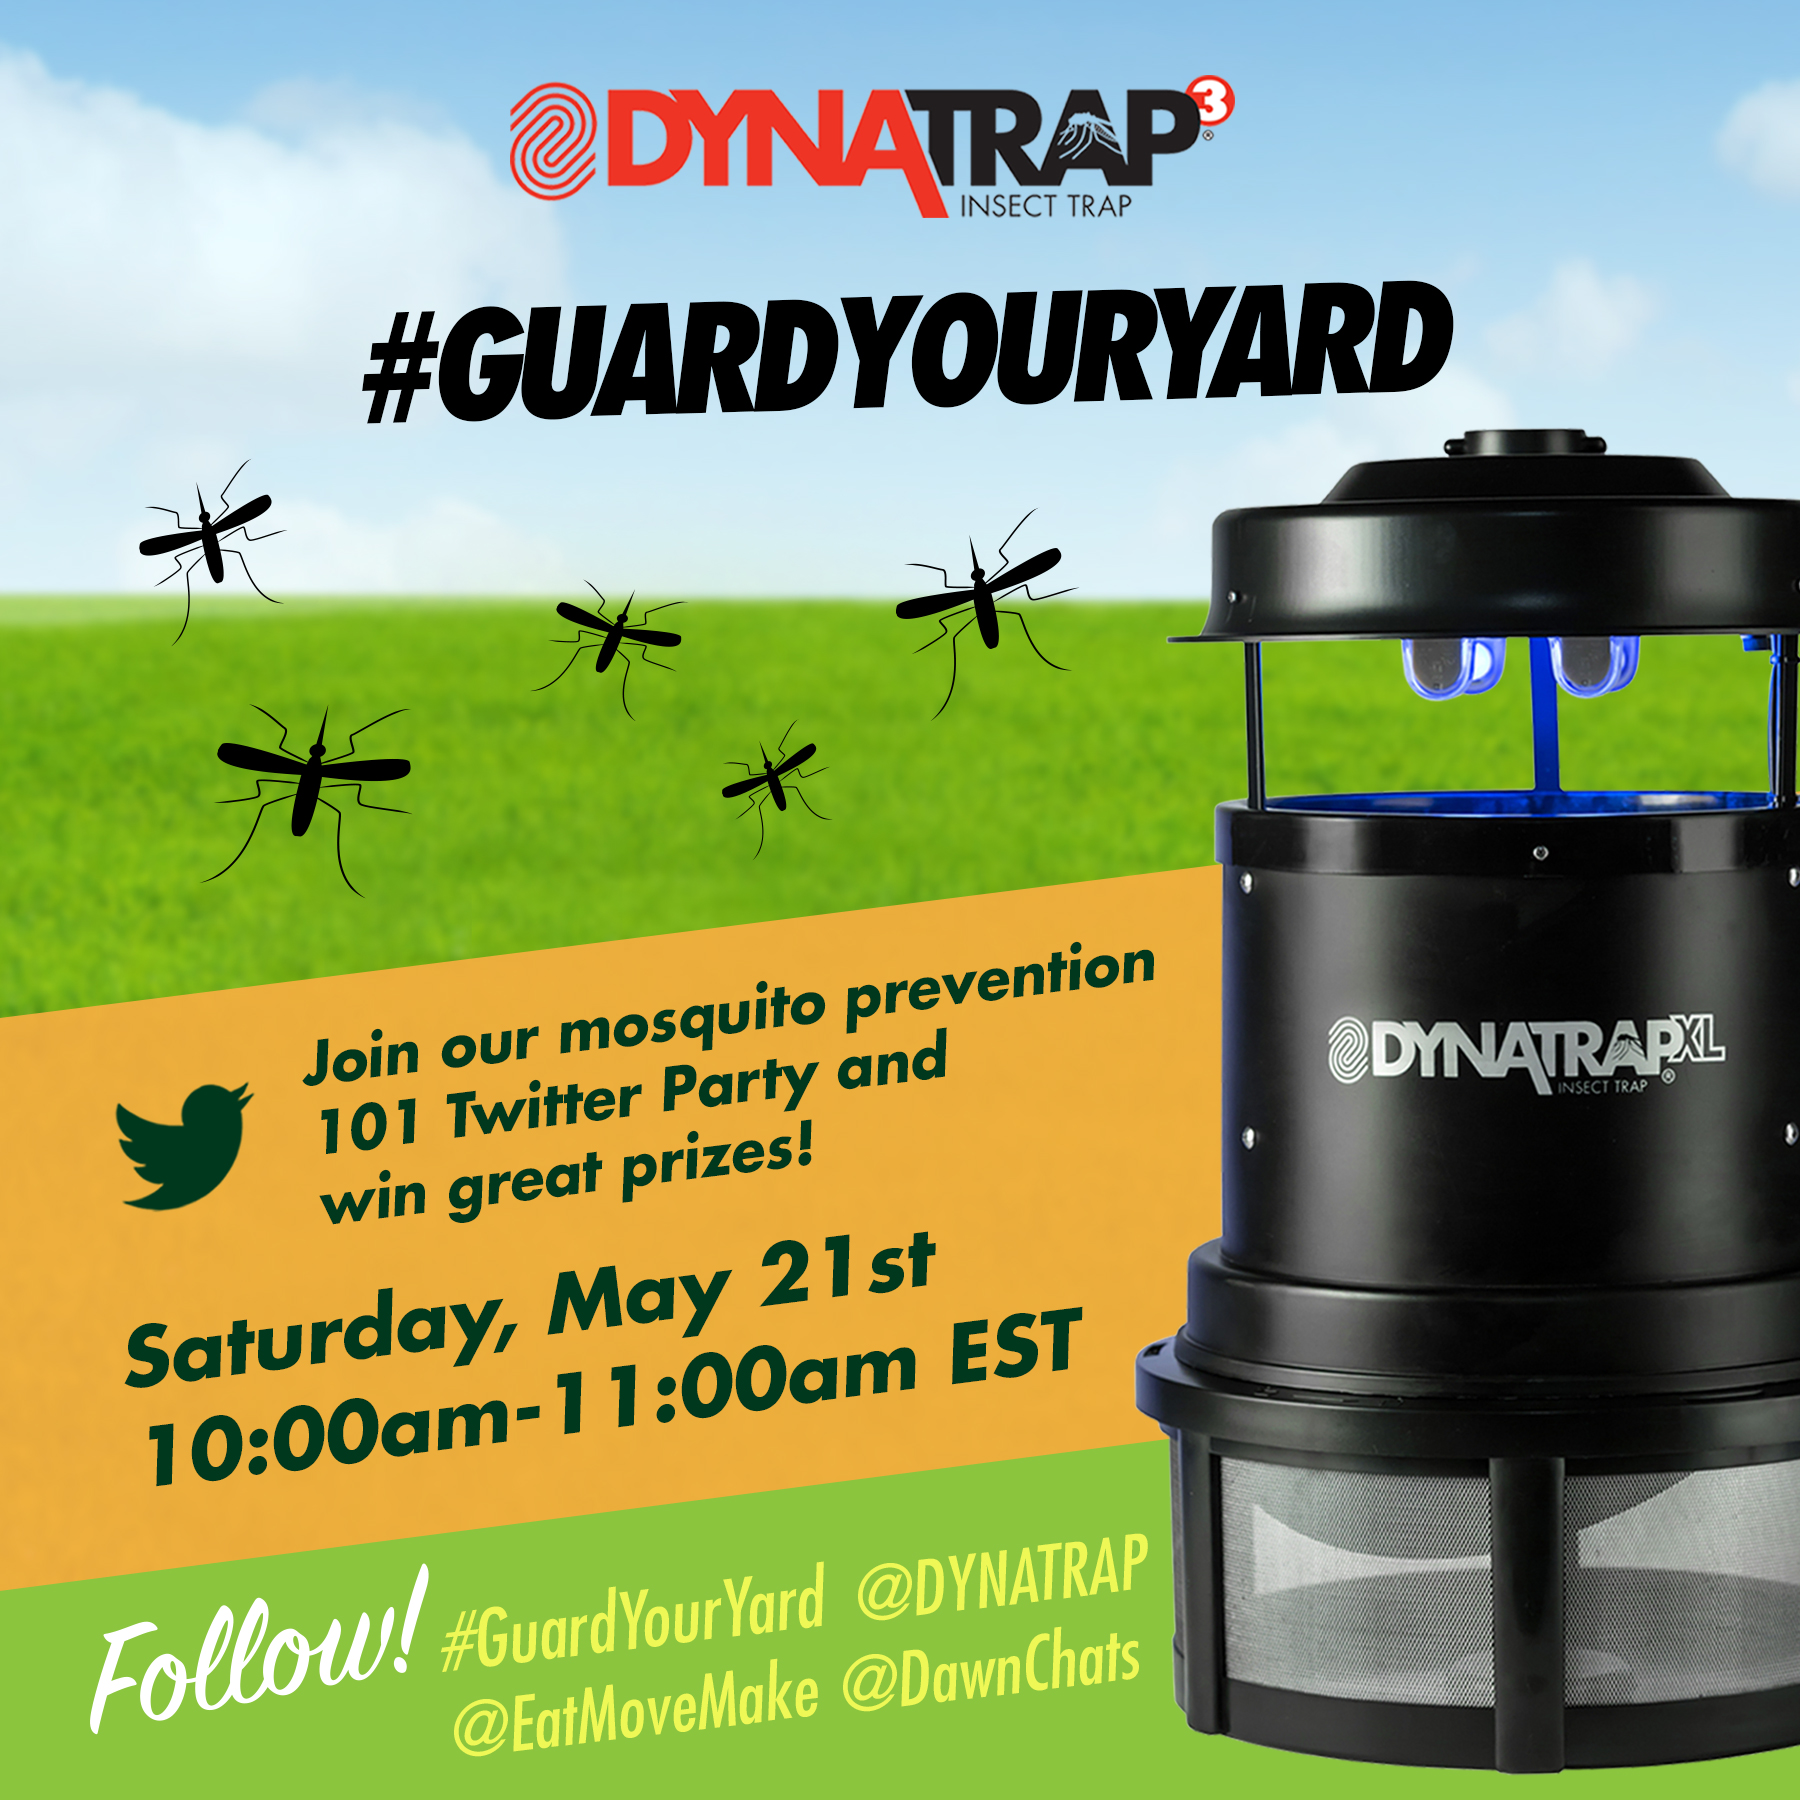 Join us for the #GuardYourYard Twitter Party on May 21, 2016